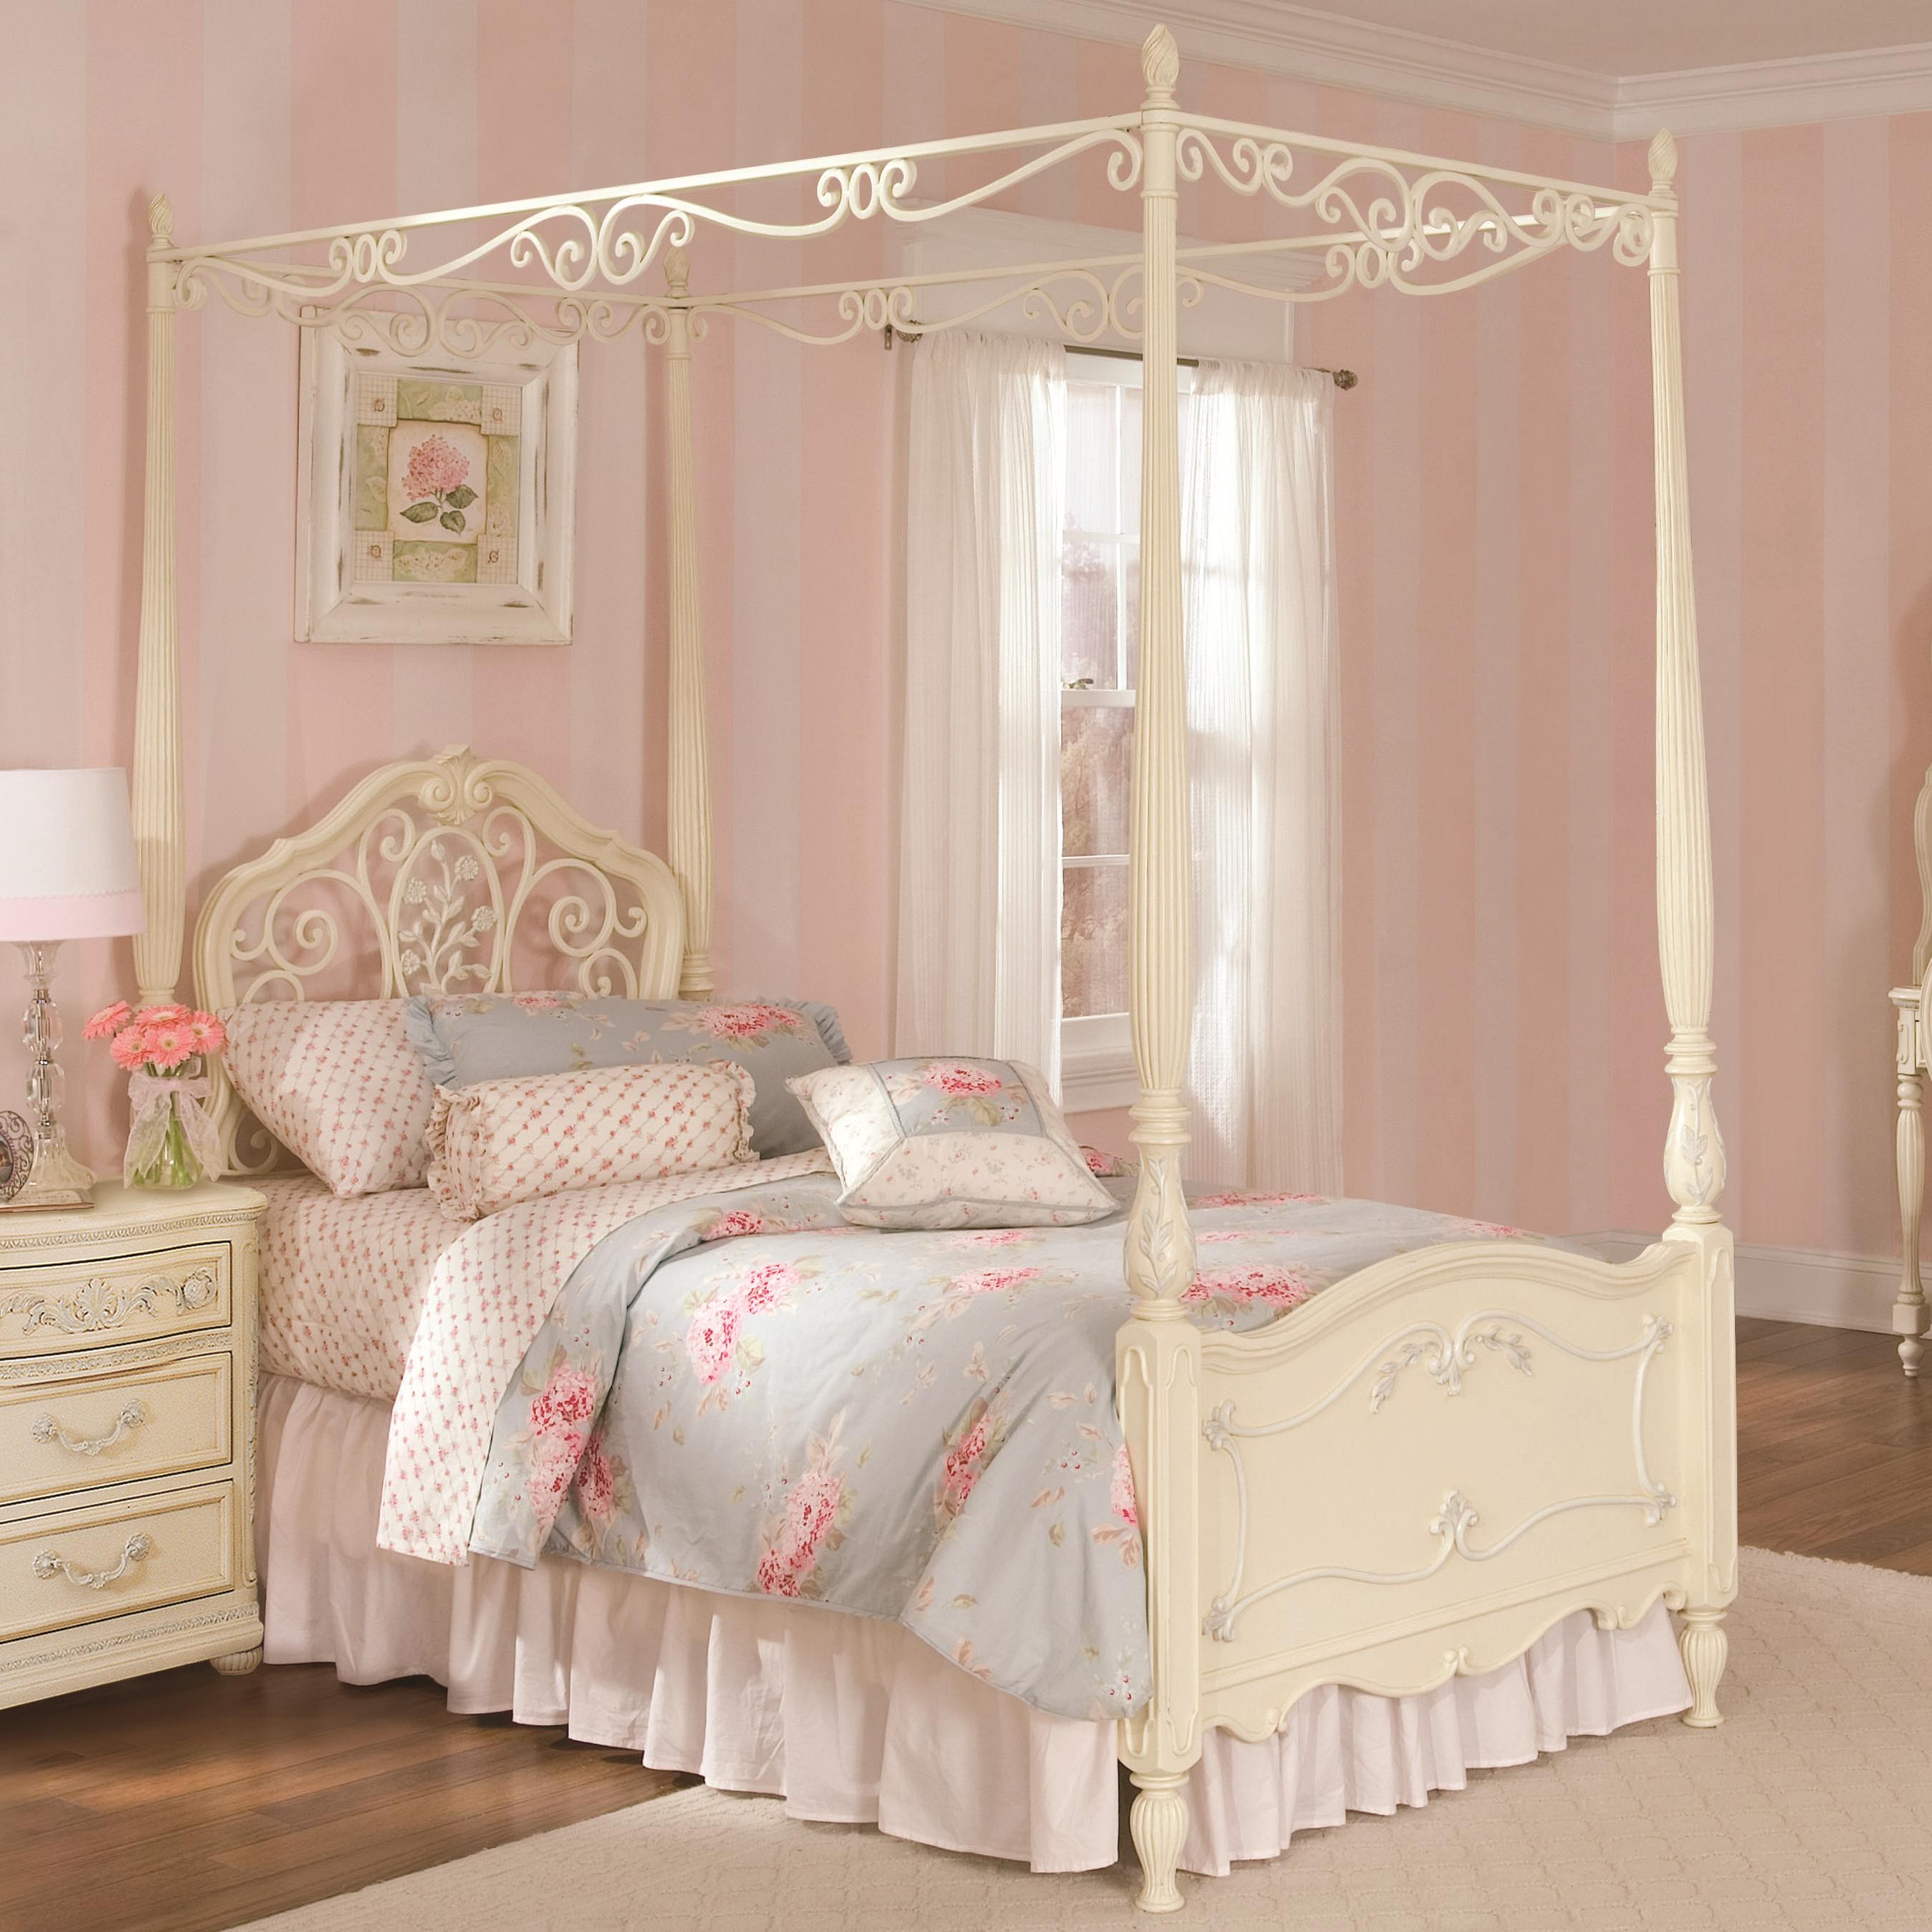 Lea Industries Jessica McClintock Romance Twin-Size Metal u0026 Wood Canopy Bed with Scroll Detailing - AHFA - Canopy Bed Dealer Locator & Lea Industries Jessica McClintock Romance Twin-Size Metal u0026 Wood ...